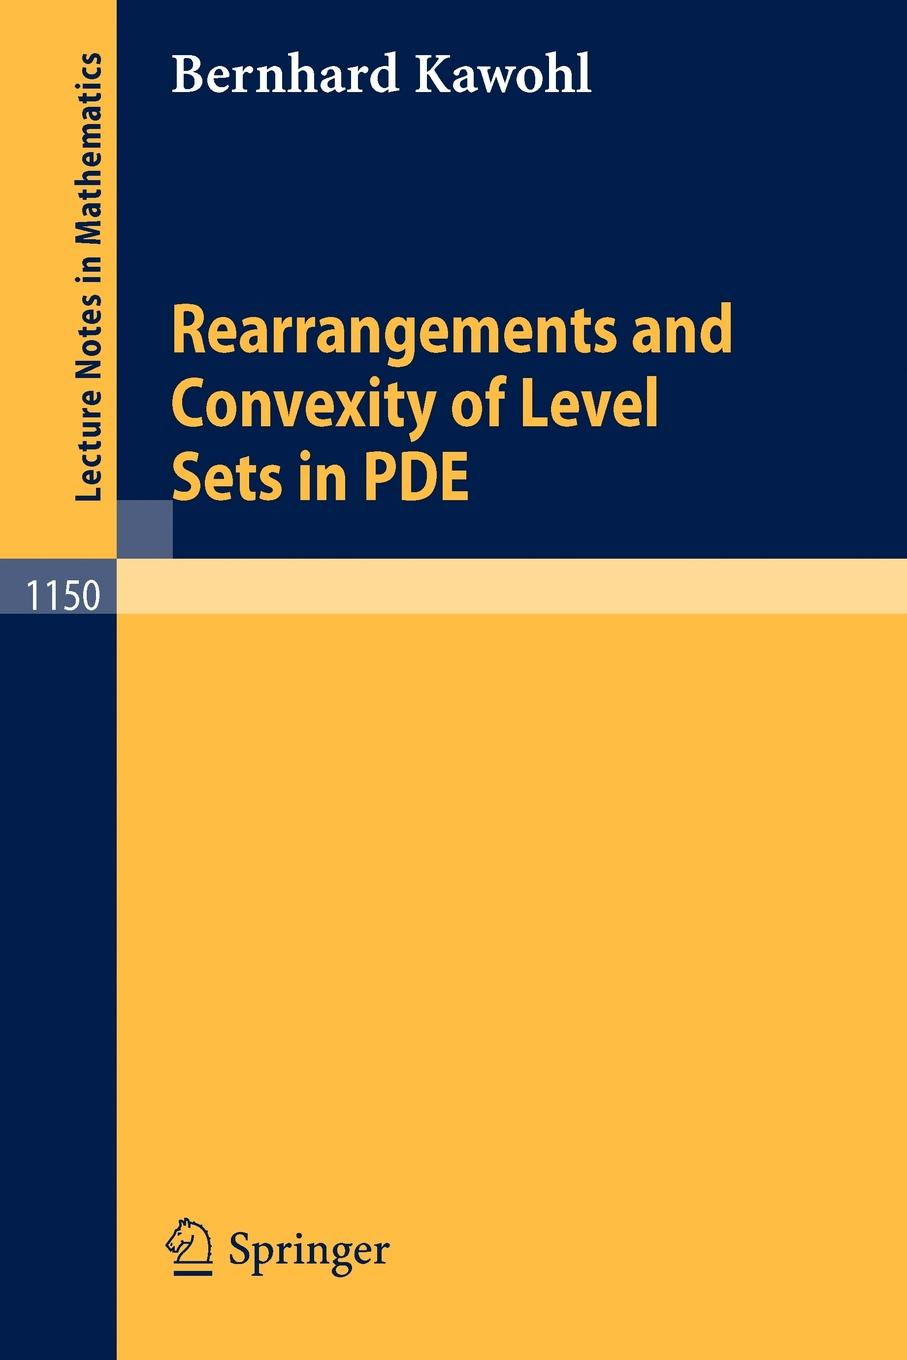 лучшая цена Bernhard Kawohl Rearrangements and Convexity of Level Sets in Pde